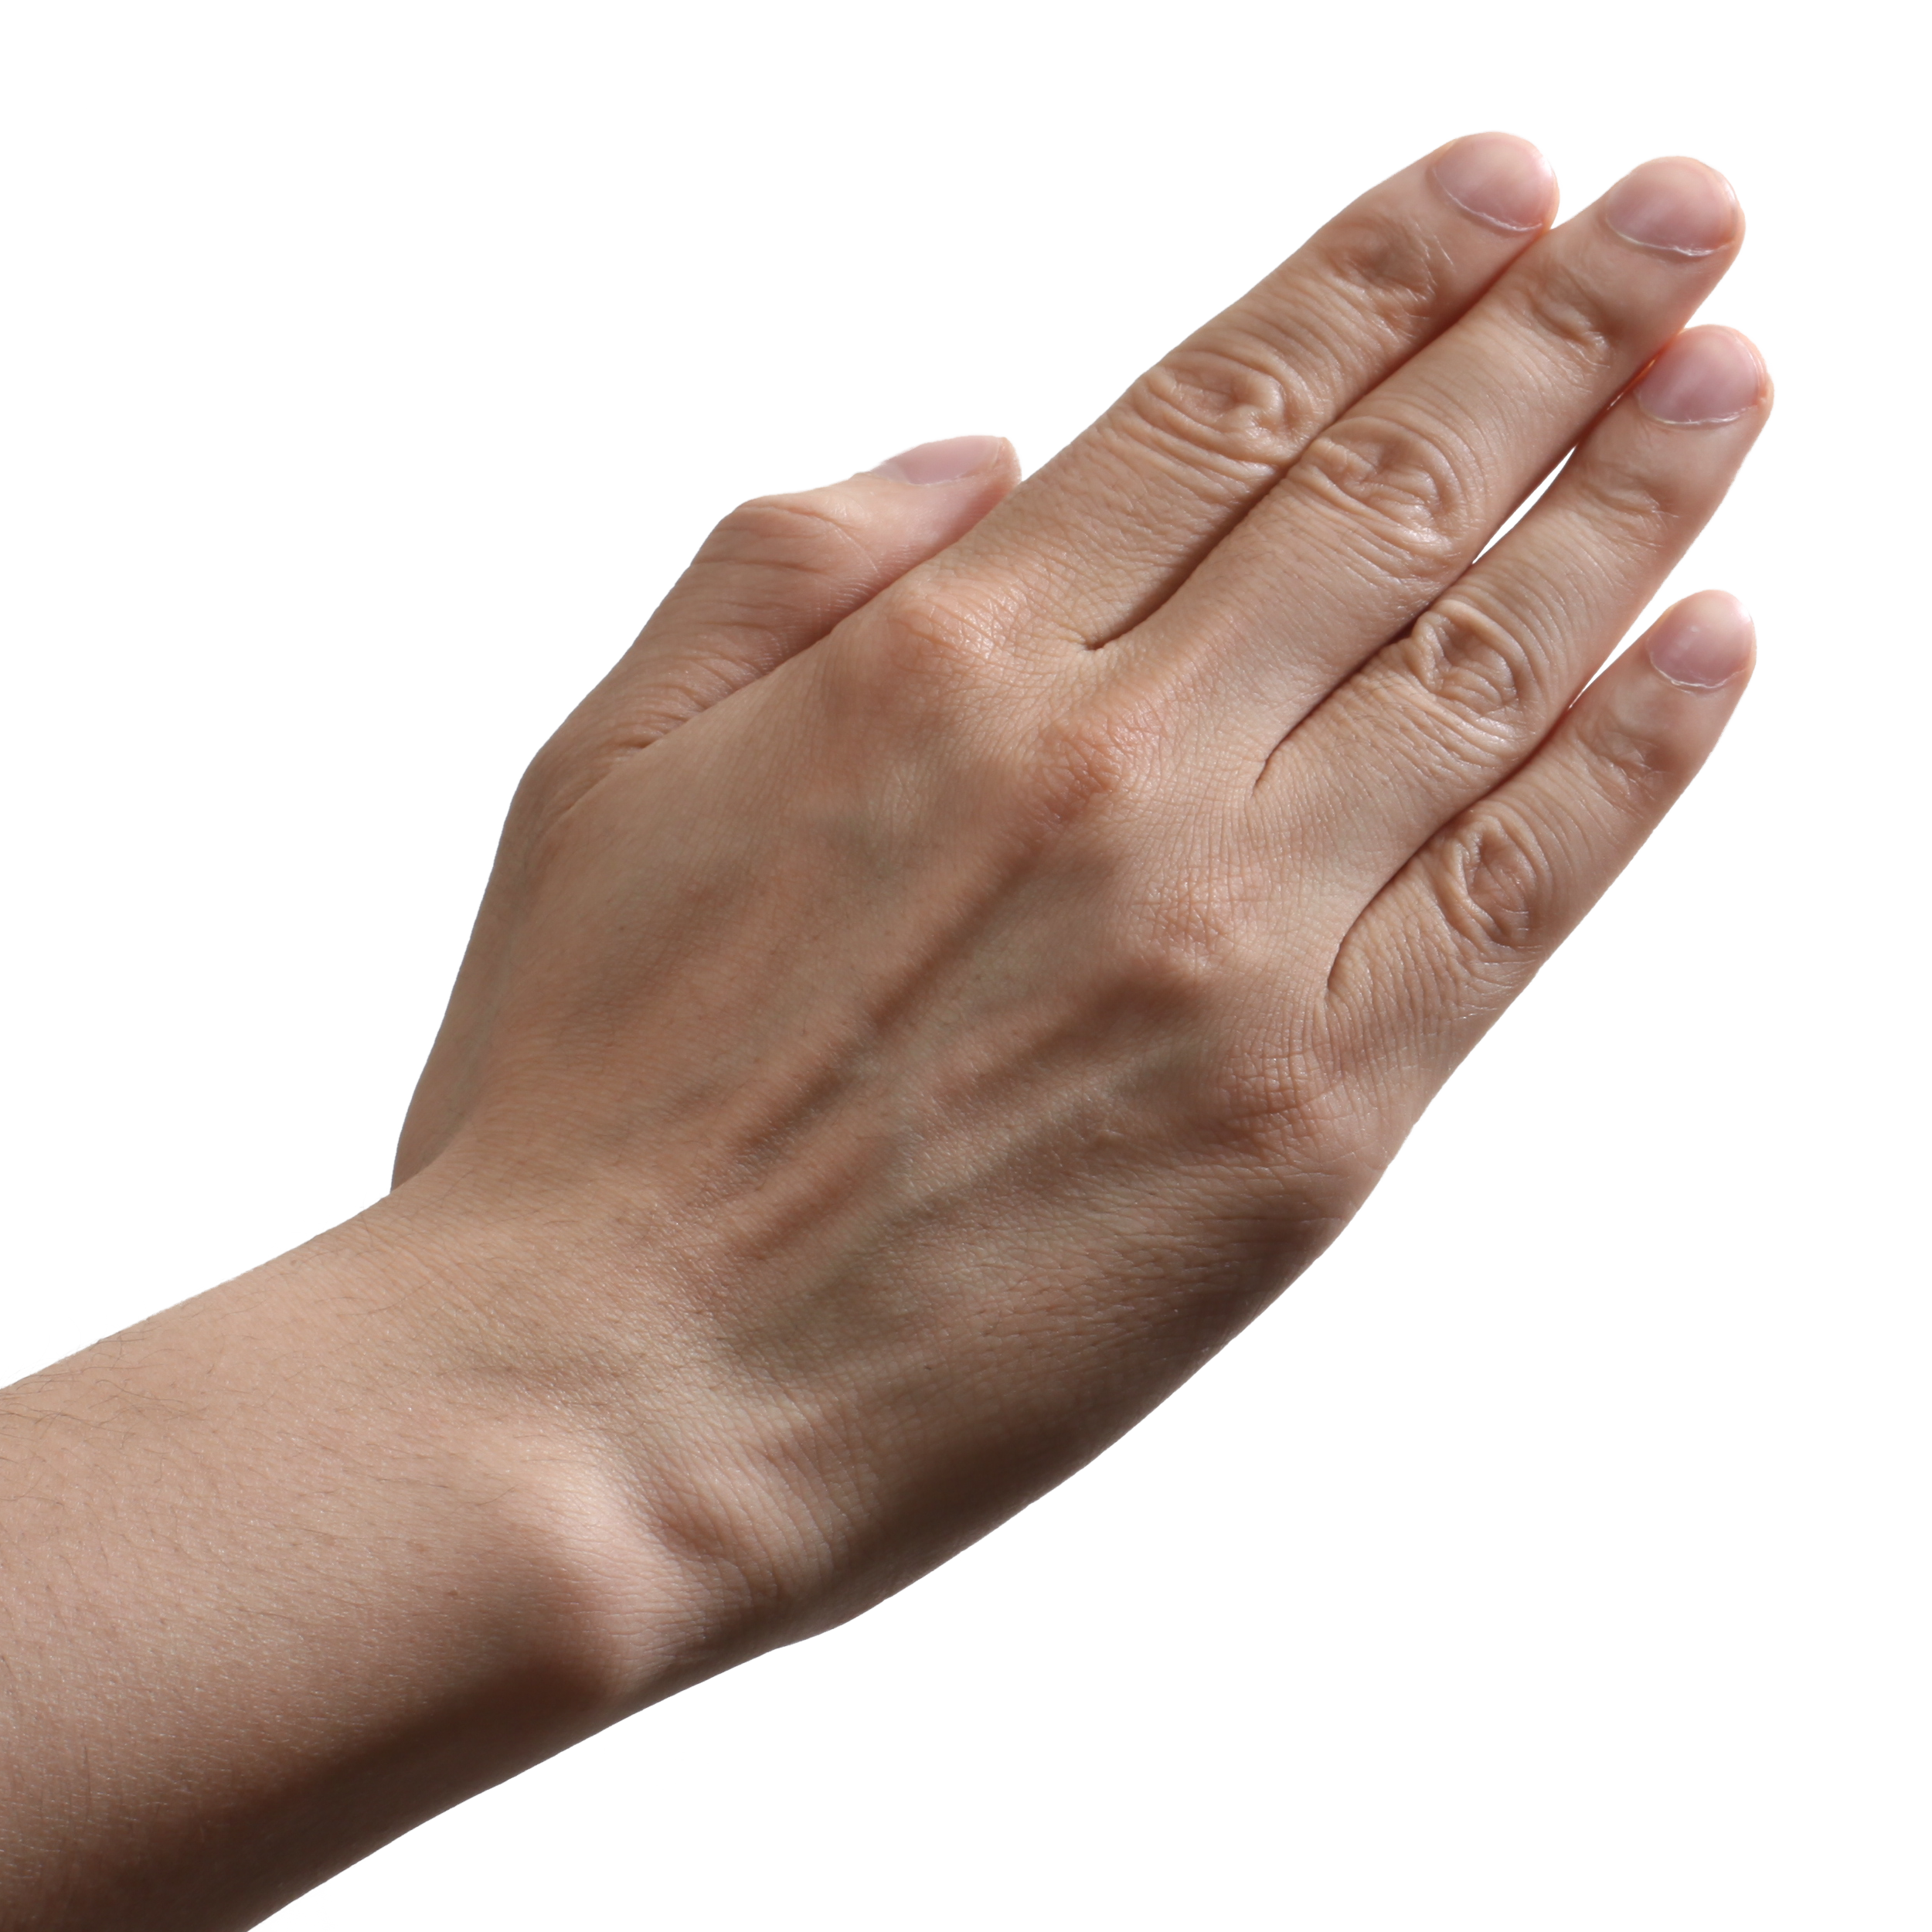 hands png, hand image picture